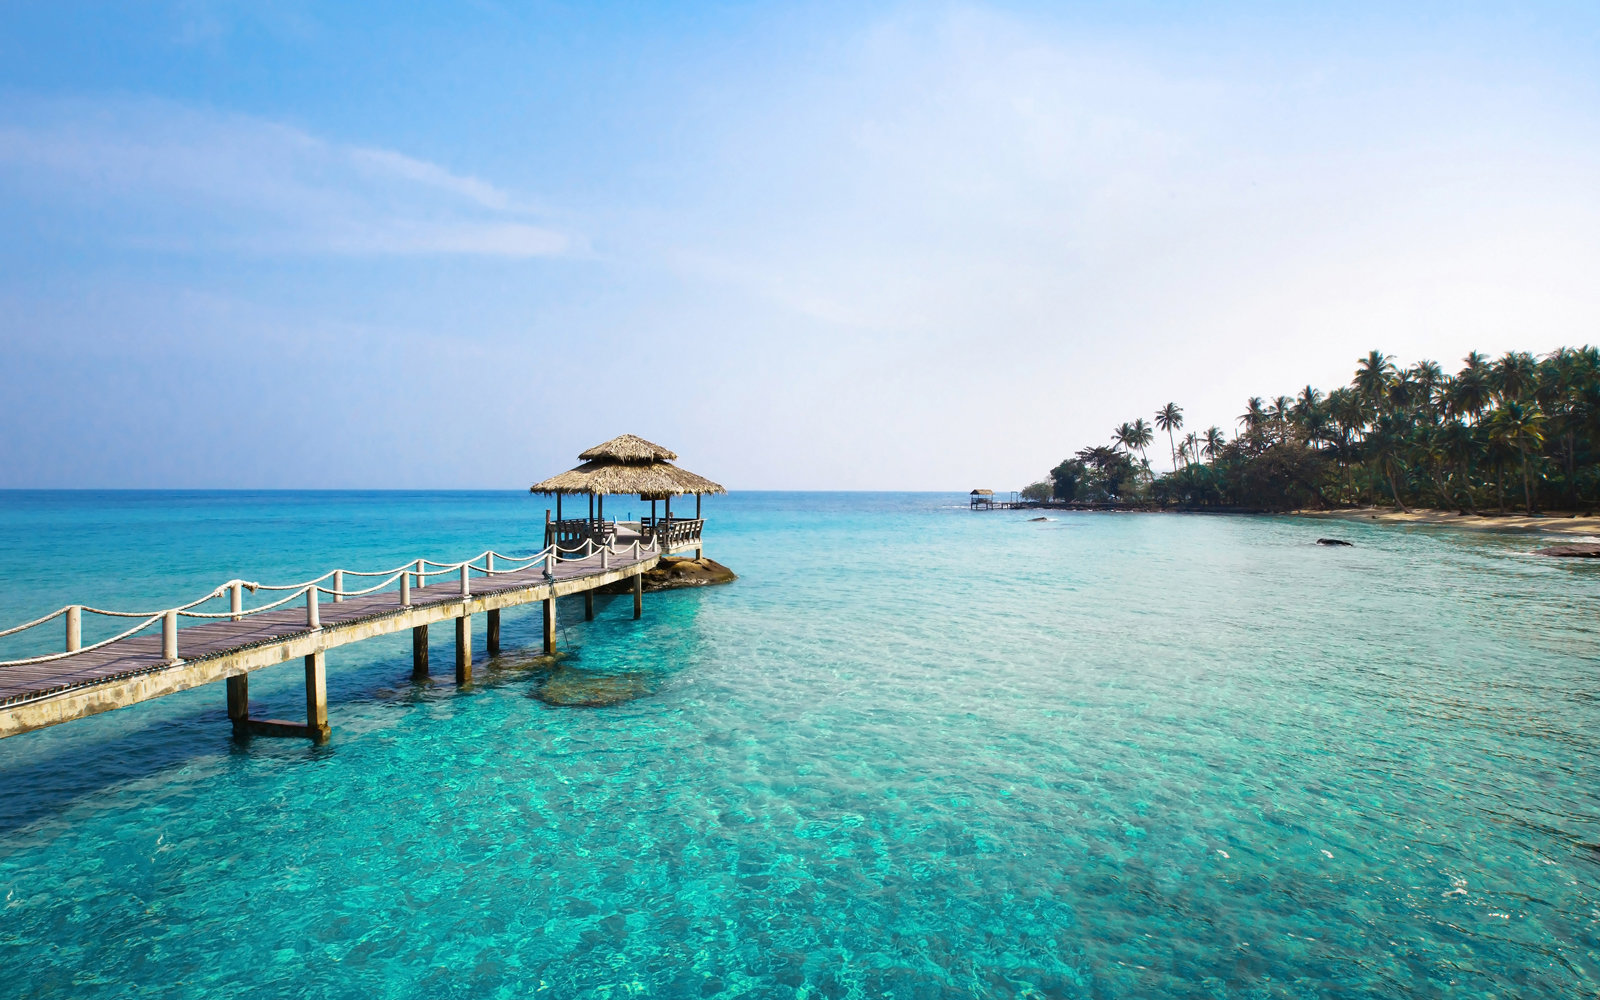 The Best Beaches For Your Money